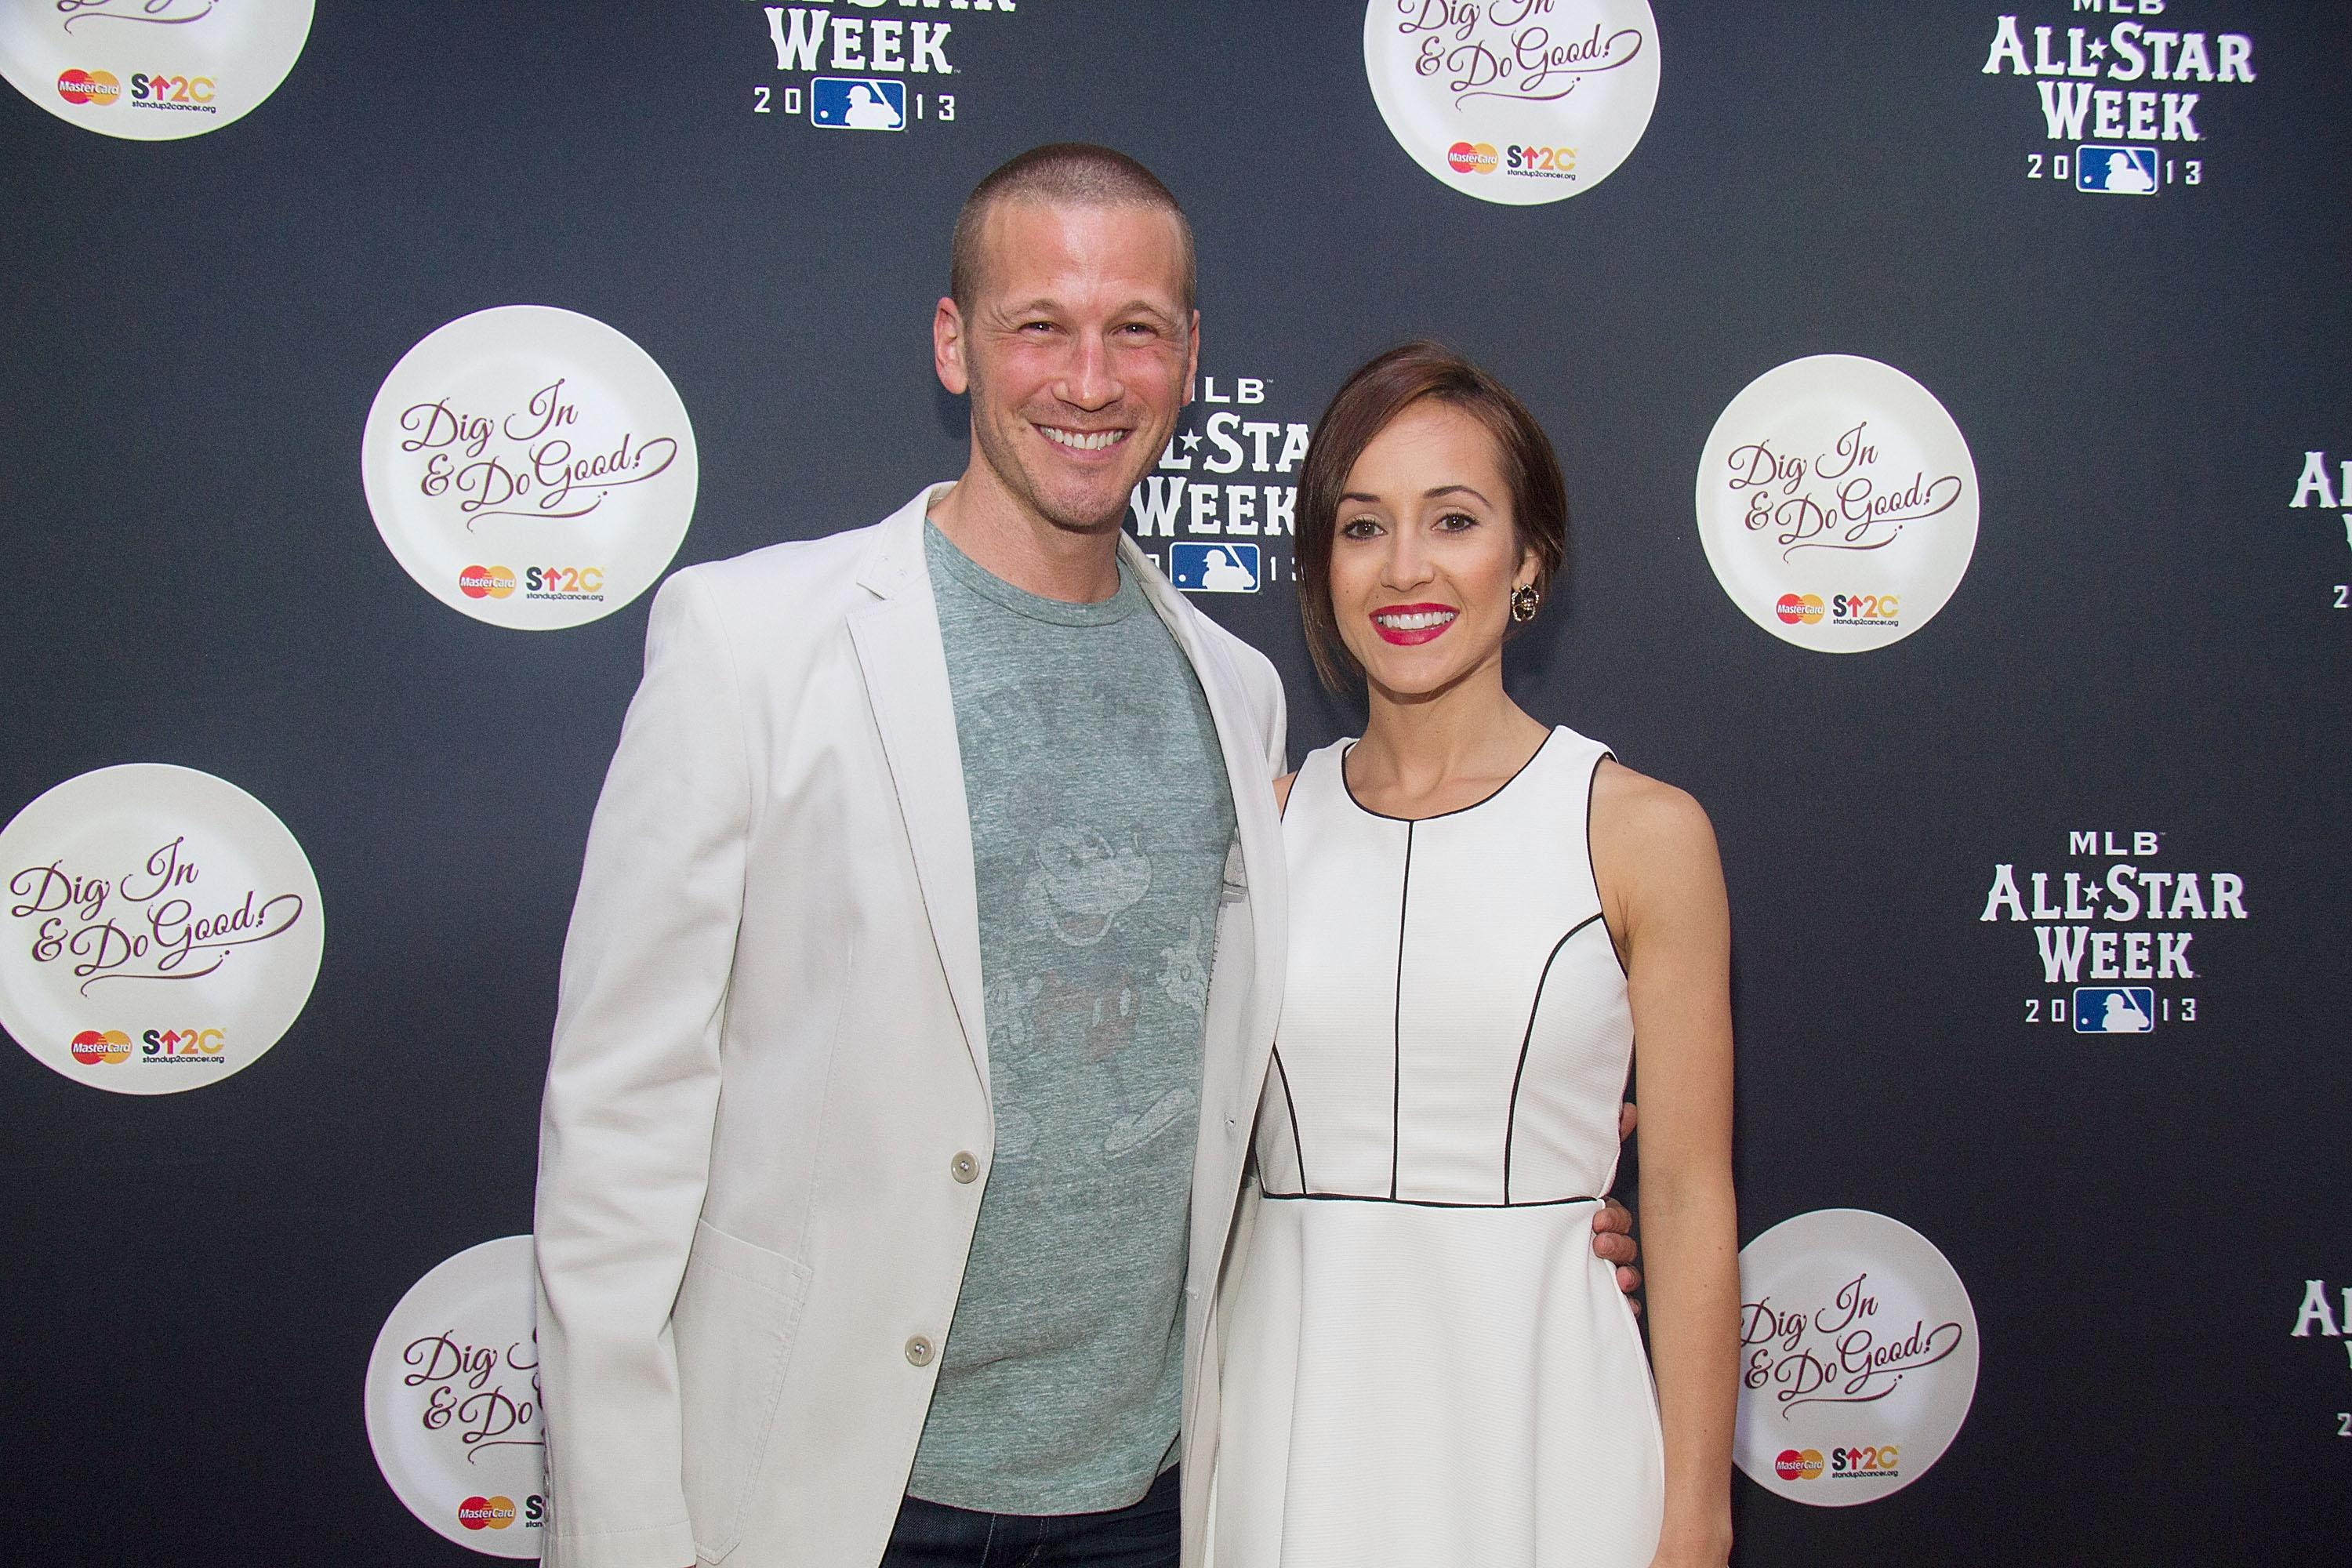 'Bachelorette' star J.P. Rosenbaum can't hold his kids after Guillain-Barré syndrome diagnosis